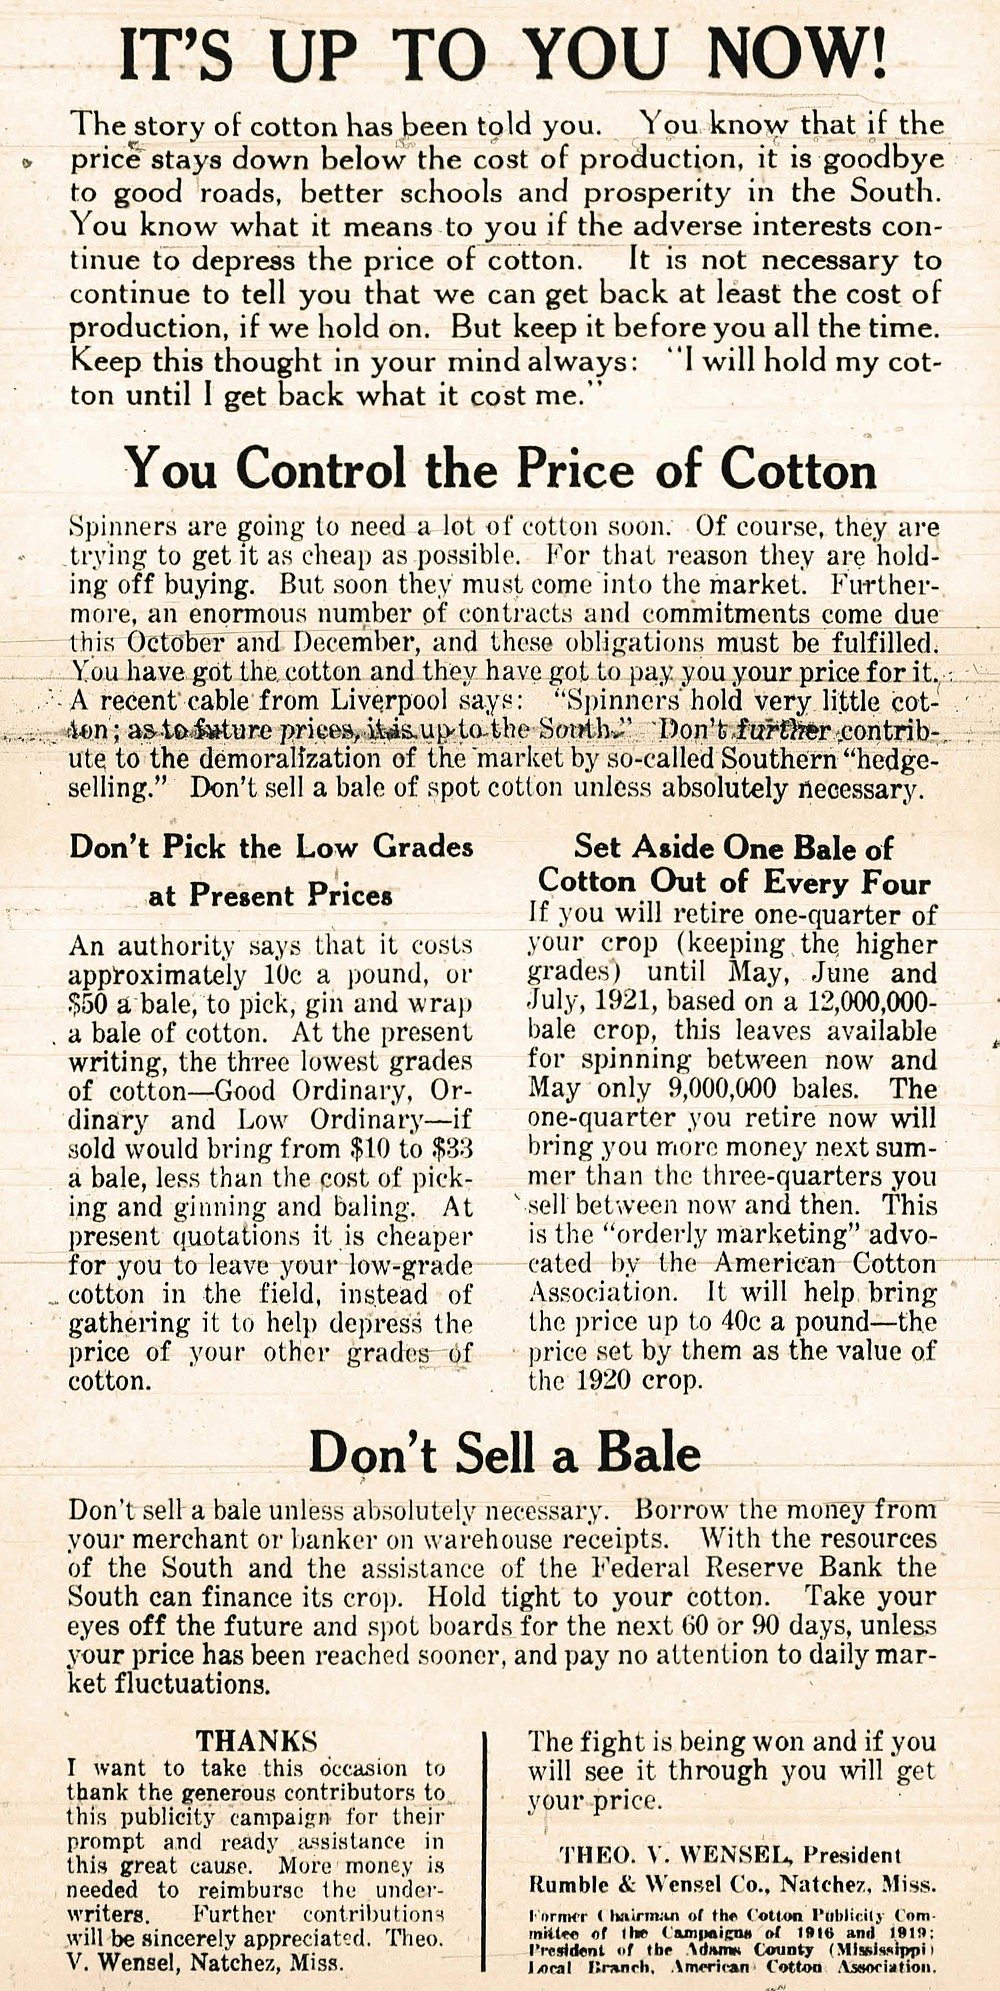 Ad urging farmers not to bring any more cotton to market until the price improves, from the Oct. 11, 1920, Arkansas Democrat.  (Arkansas Democrat-Gazette)